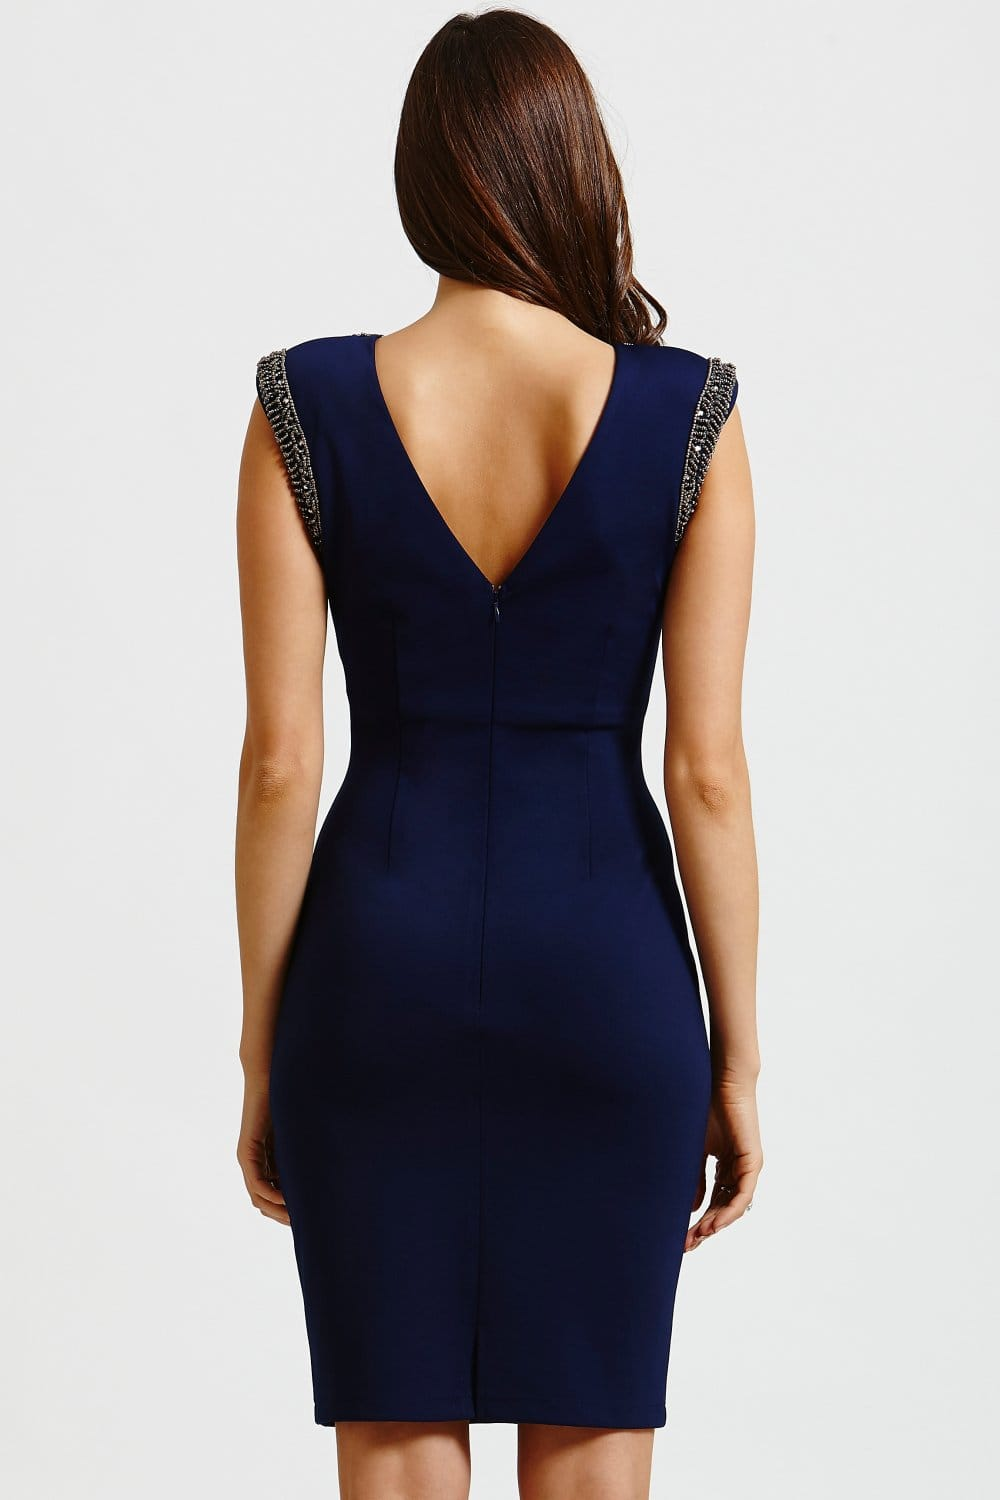 With bodycon tops where buy dresses designer